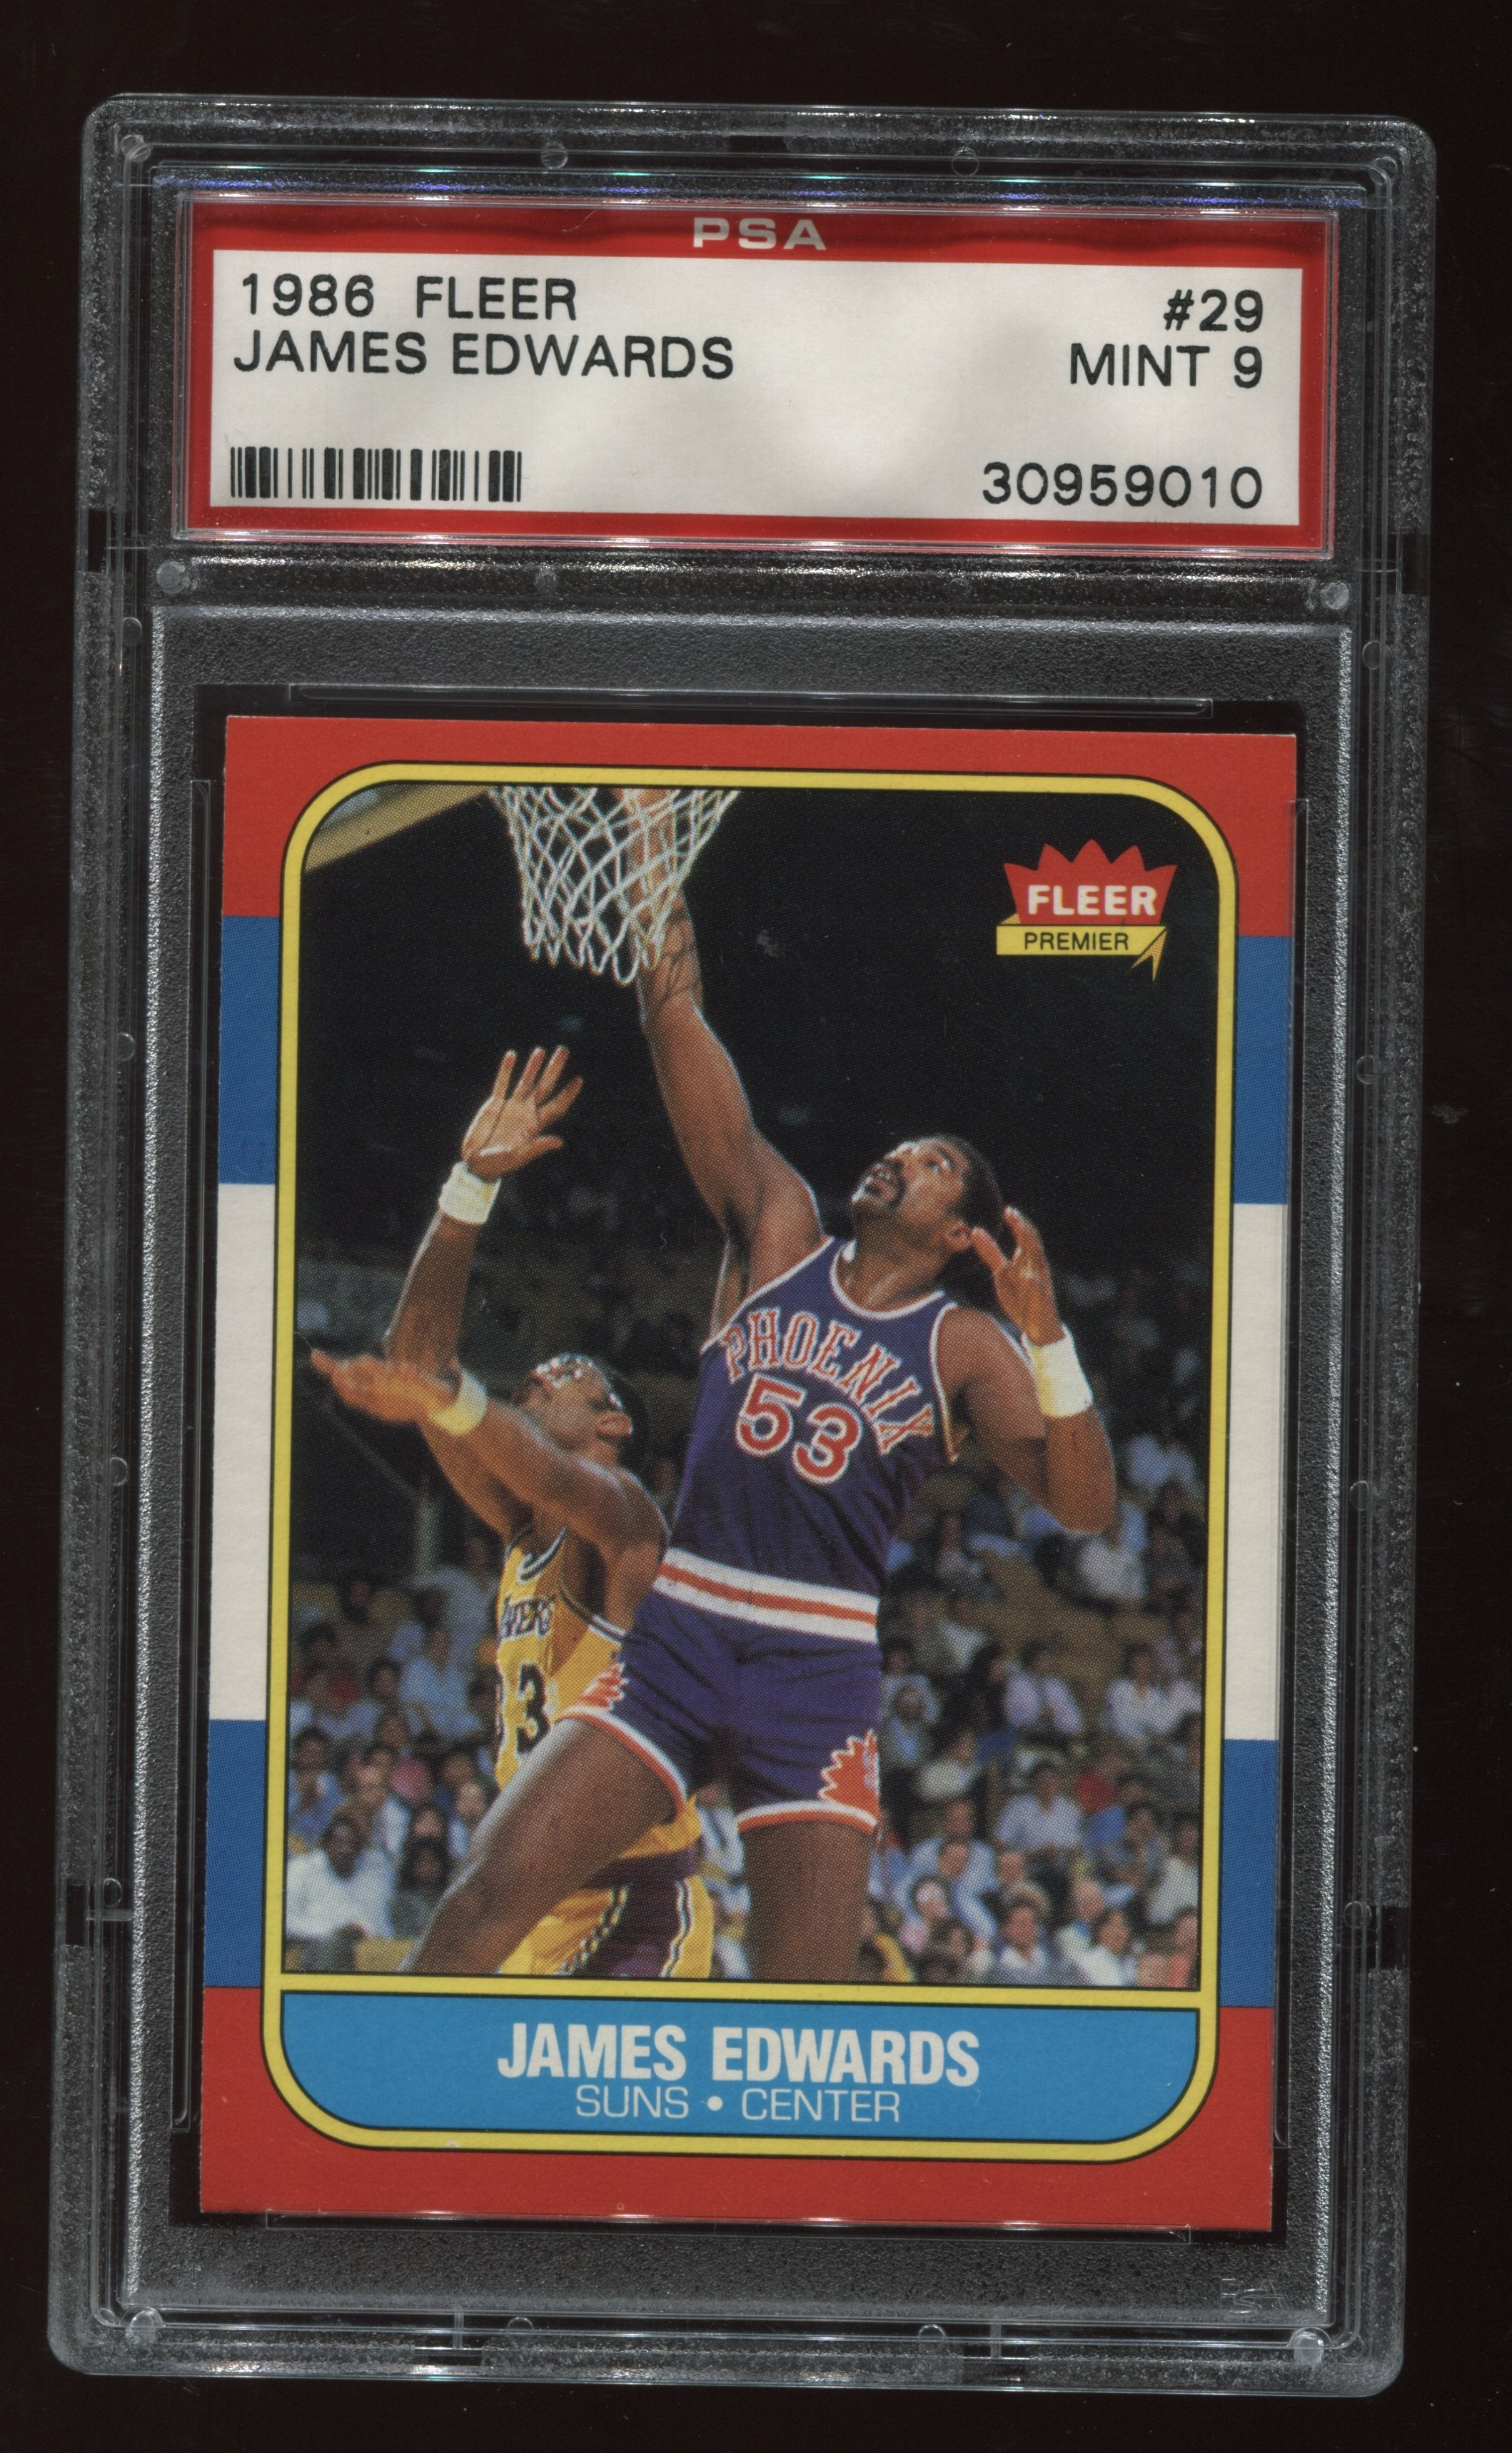 1986-87 Fleer #29 James Edwards PSA 9 | Eastridge Sports Cards